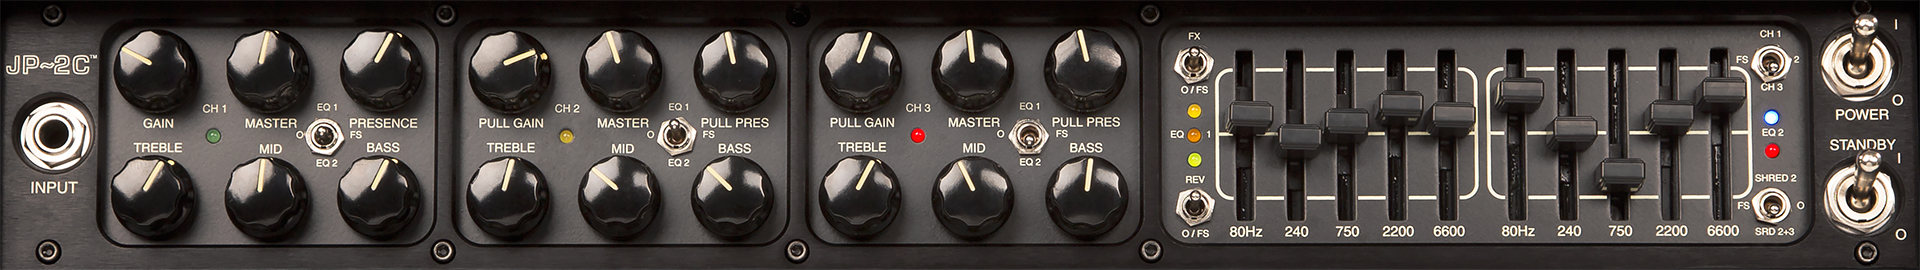 MESA BOOGIE JP-2C Limited Edition Panel Front